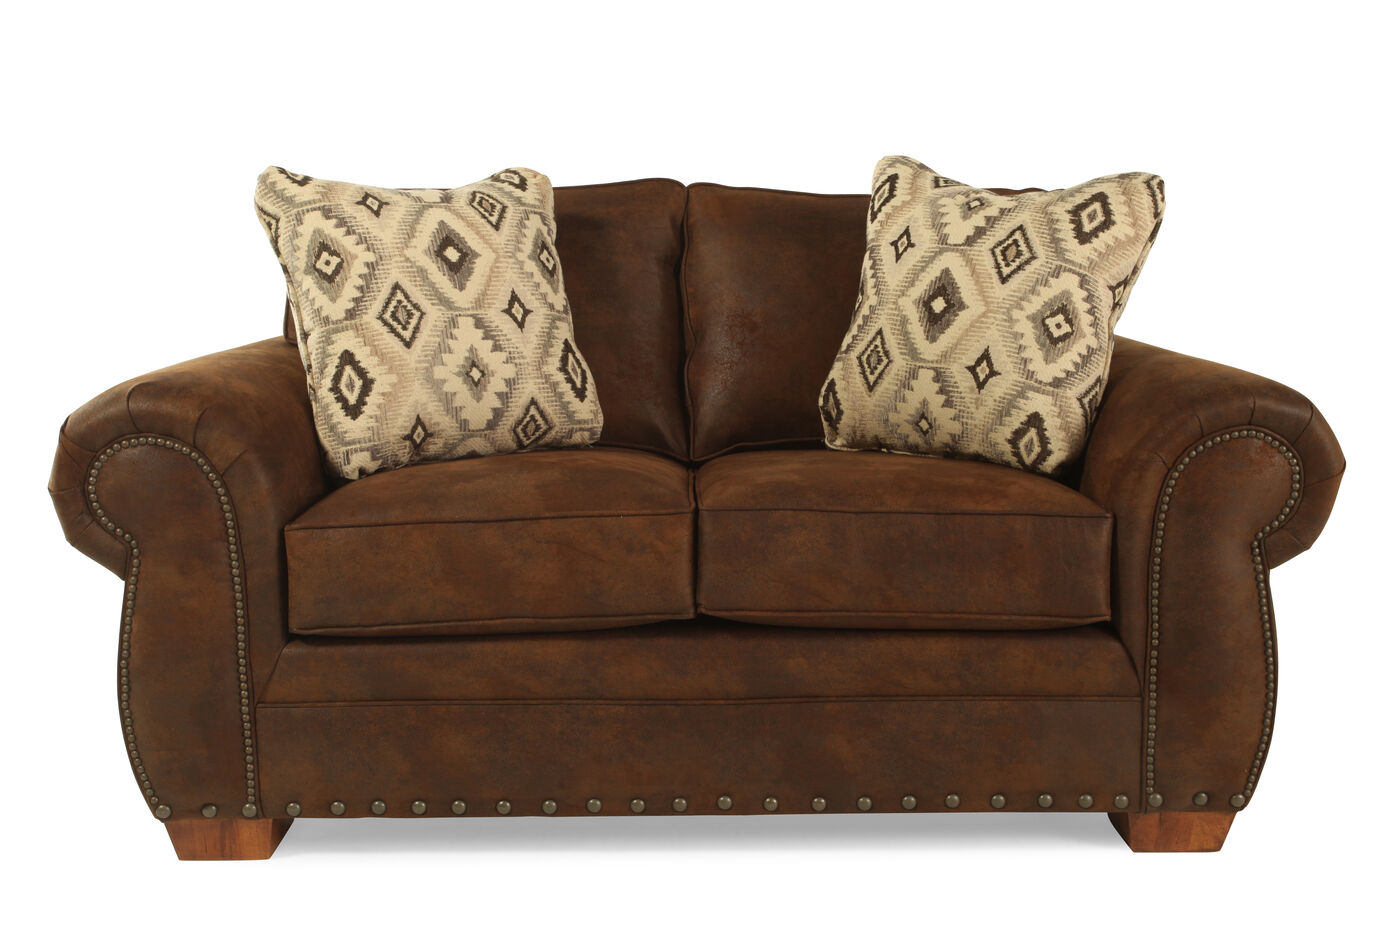 Broyhill Cambridge Loveseat Mathis Brothers Furniture